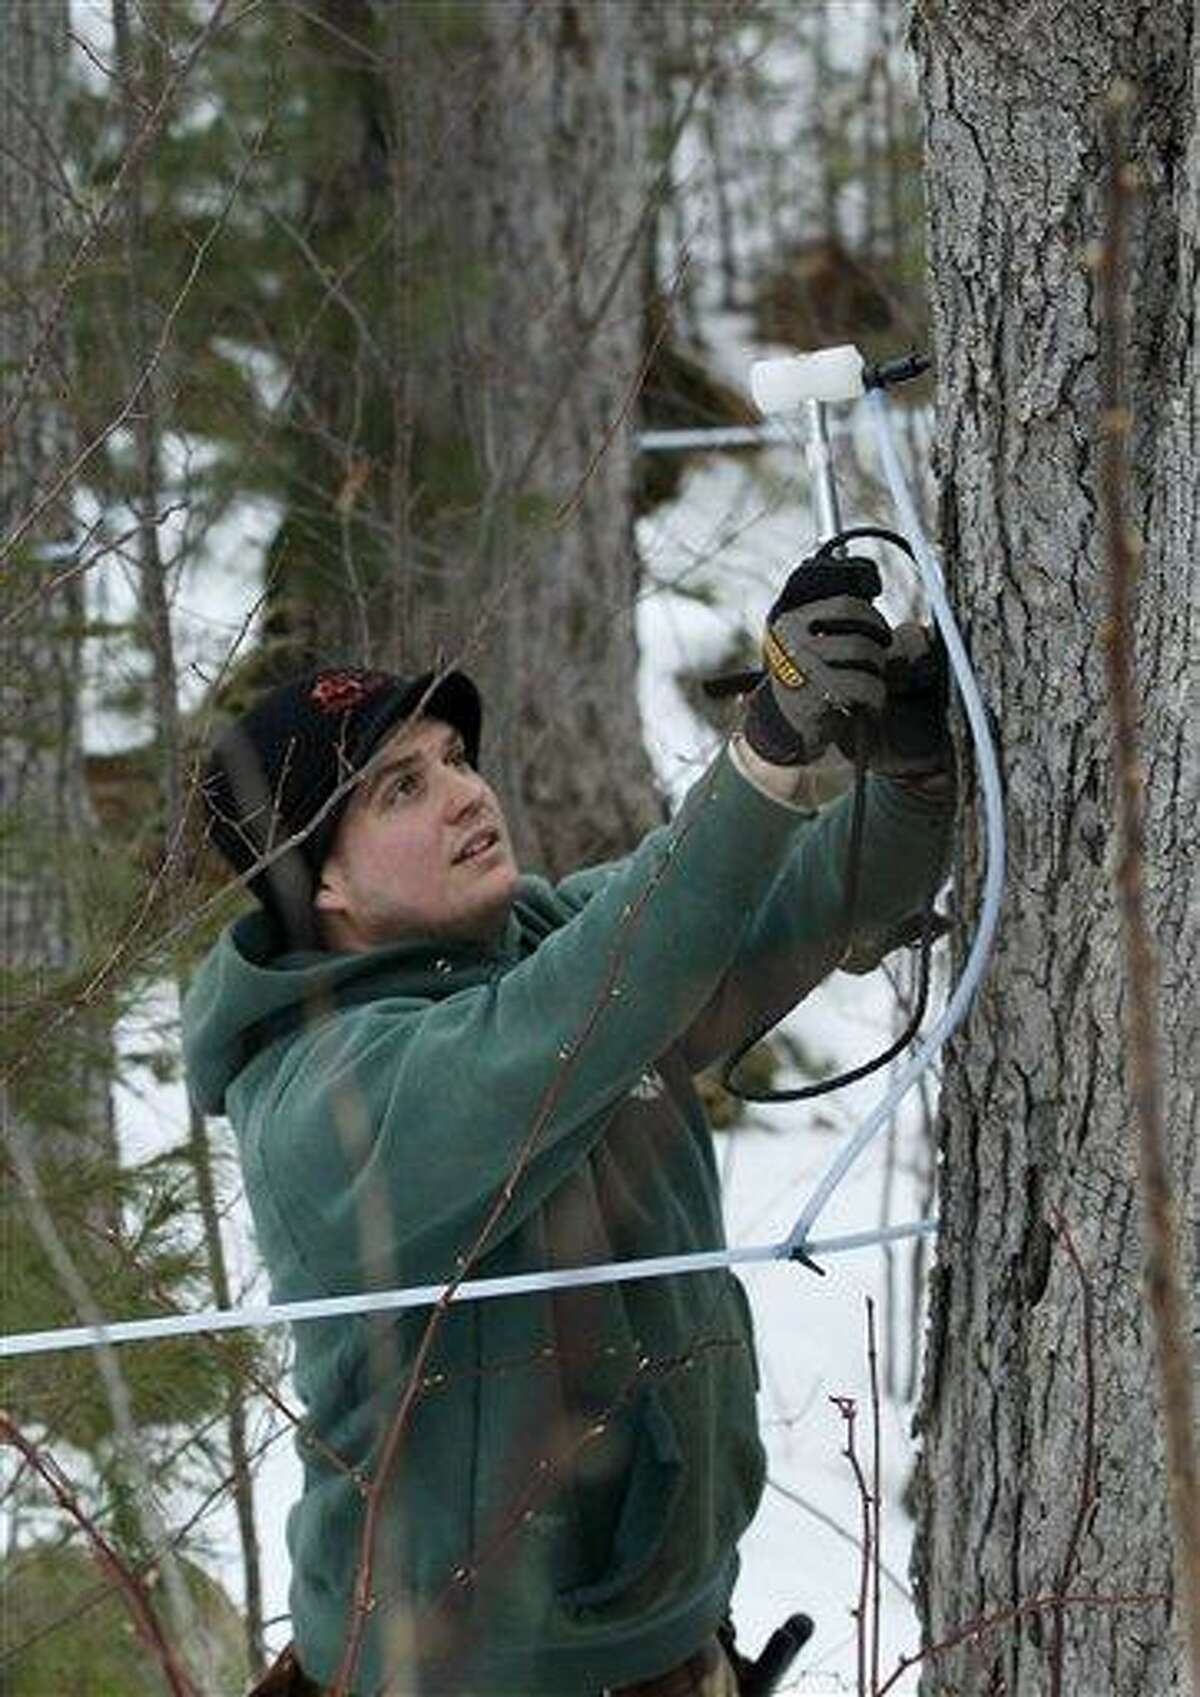 Ben Fisk hammers a tap and collection tube into the trunk of a maple tree Feb. 14 at a timber stand in Newbury, N.H. An unusually mild winter across much of the Northeast has raised some concerns about whether the maple syrup crop is in danger. Associated Press